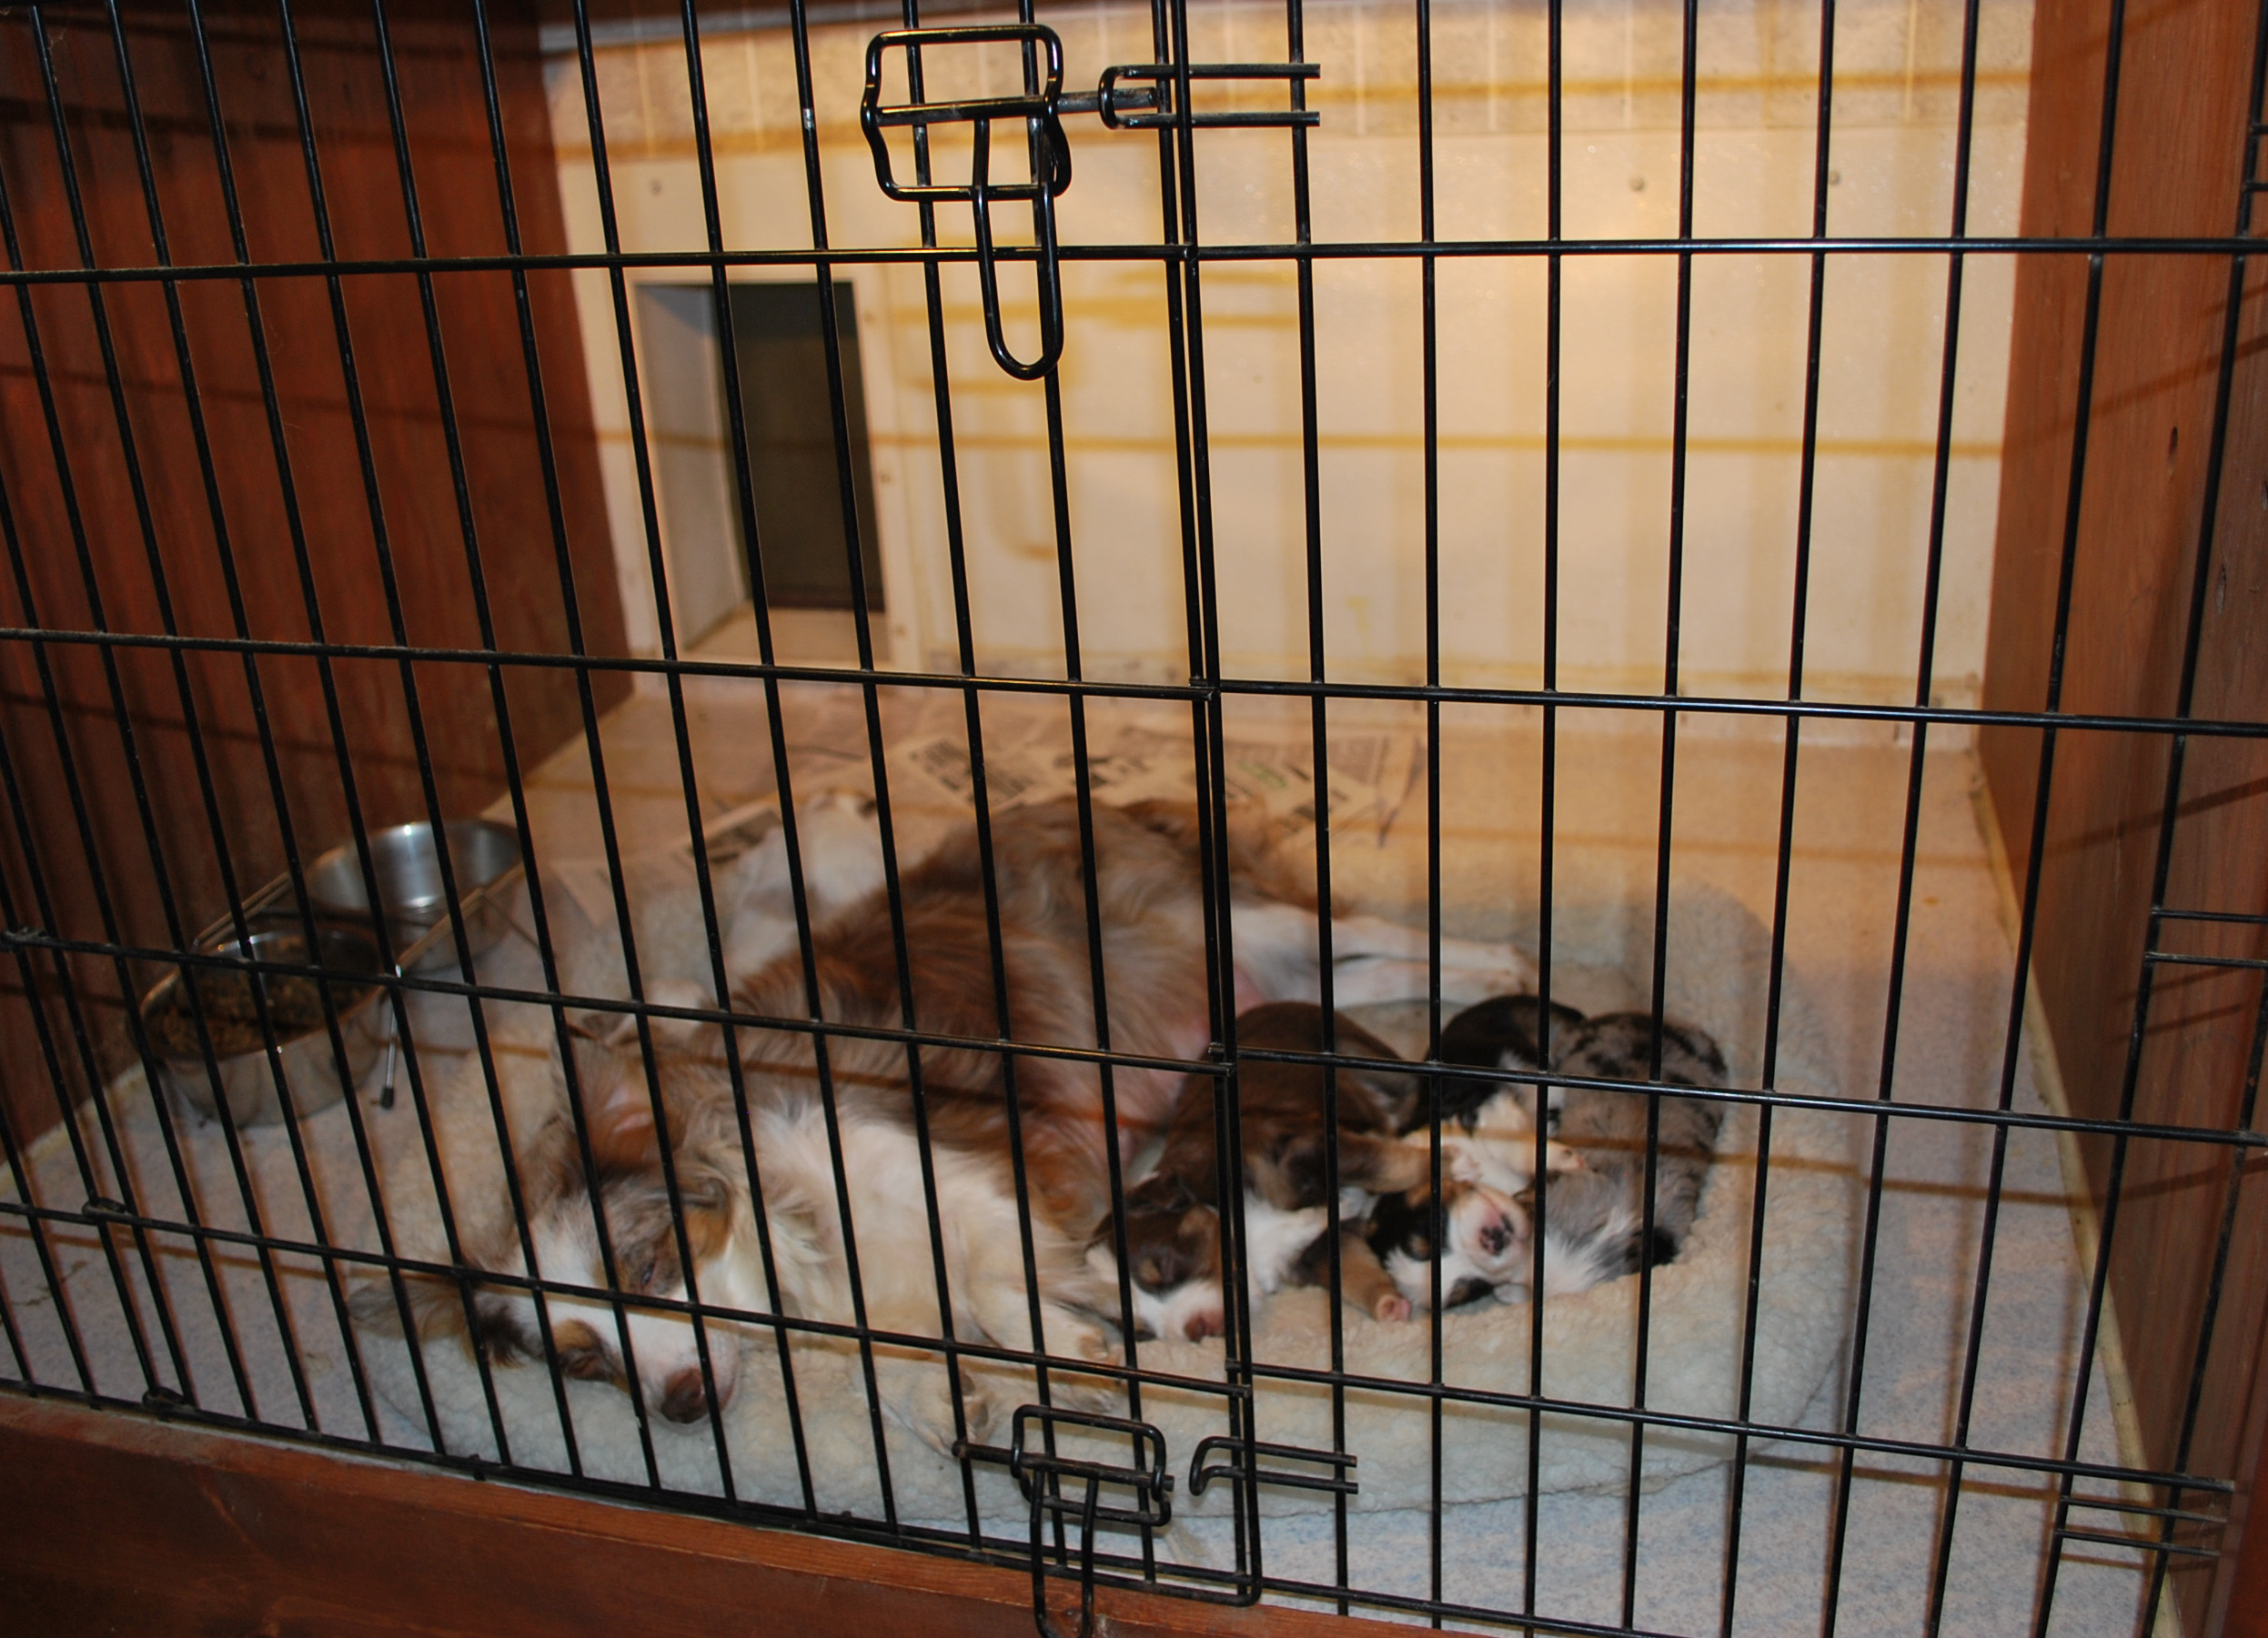 This Is Our Whelping Room. It Is Heated And Cooled As Needed. Each Room Has  A Doggy Door That Opens To The Outside, For The Mother To Get A Break From  The ...